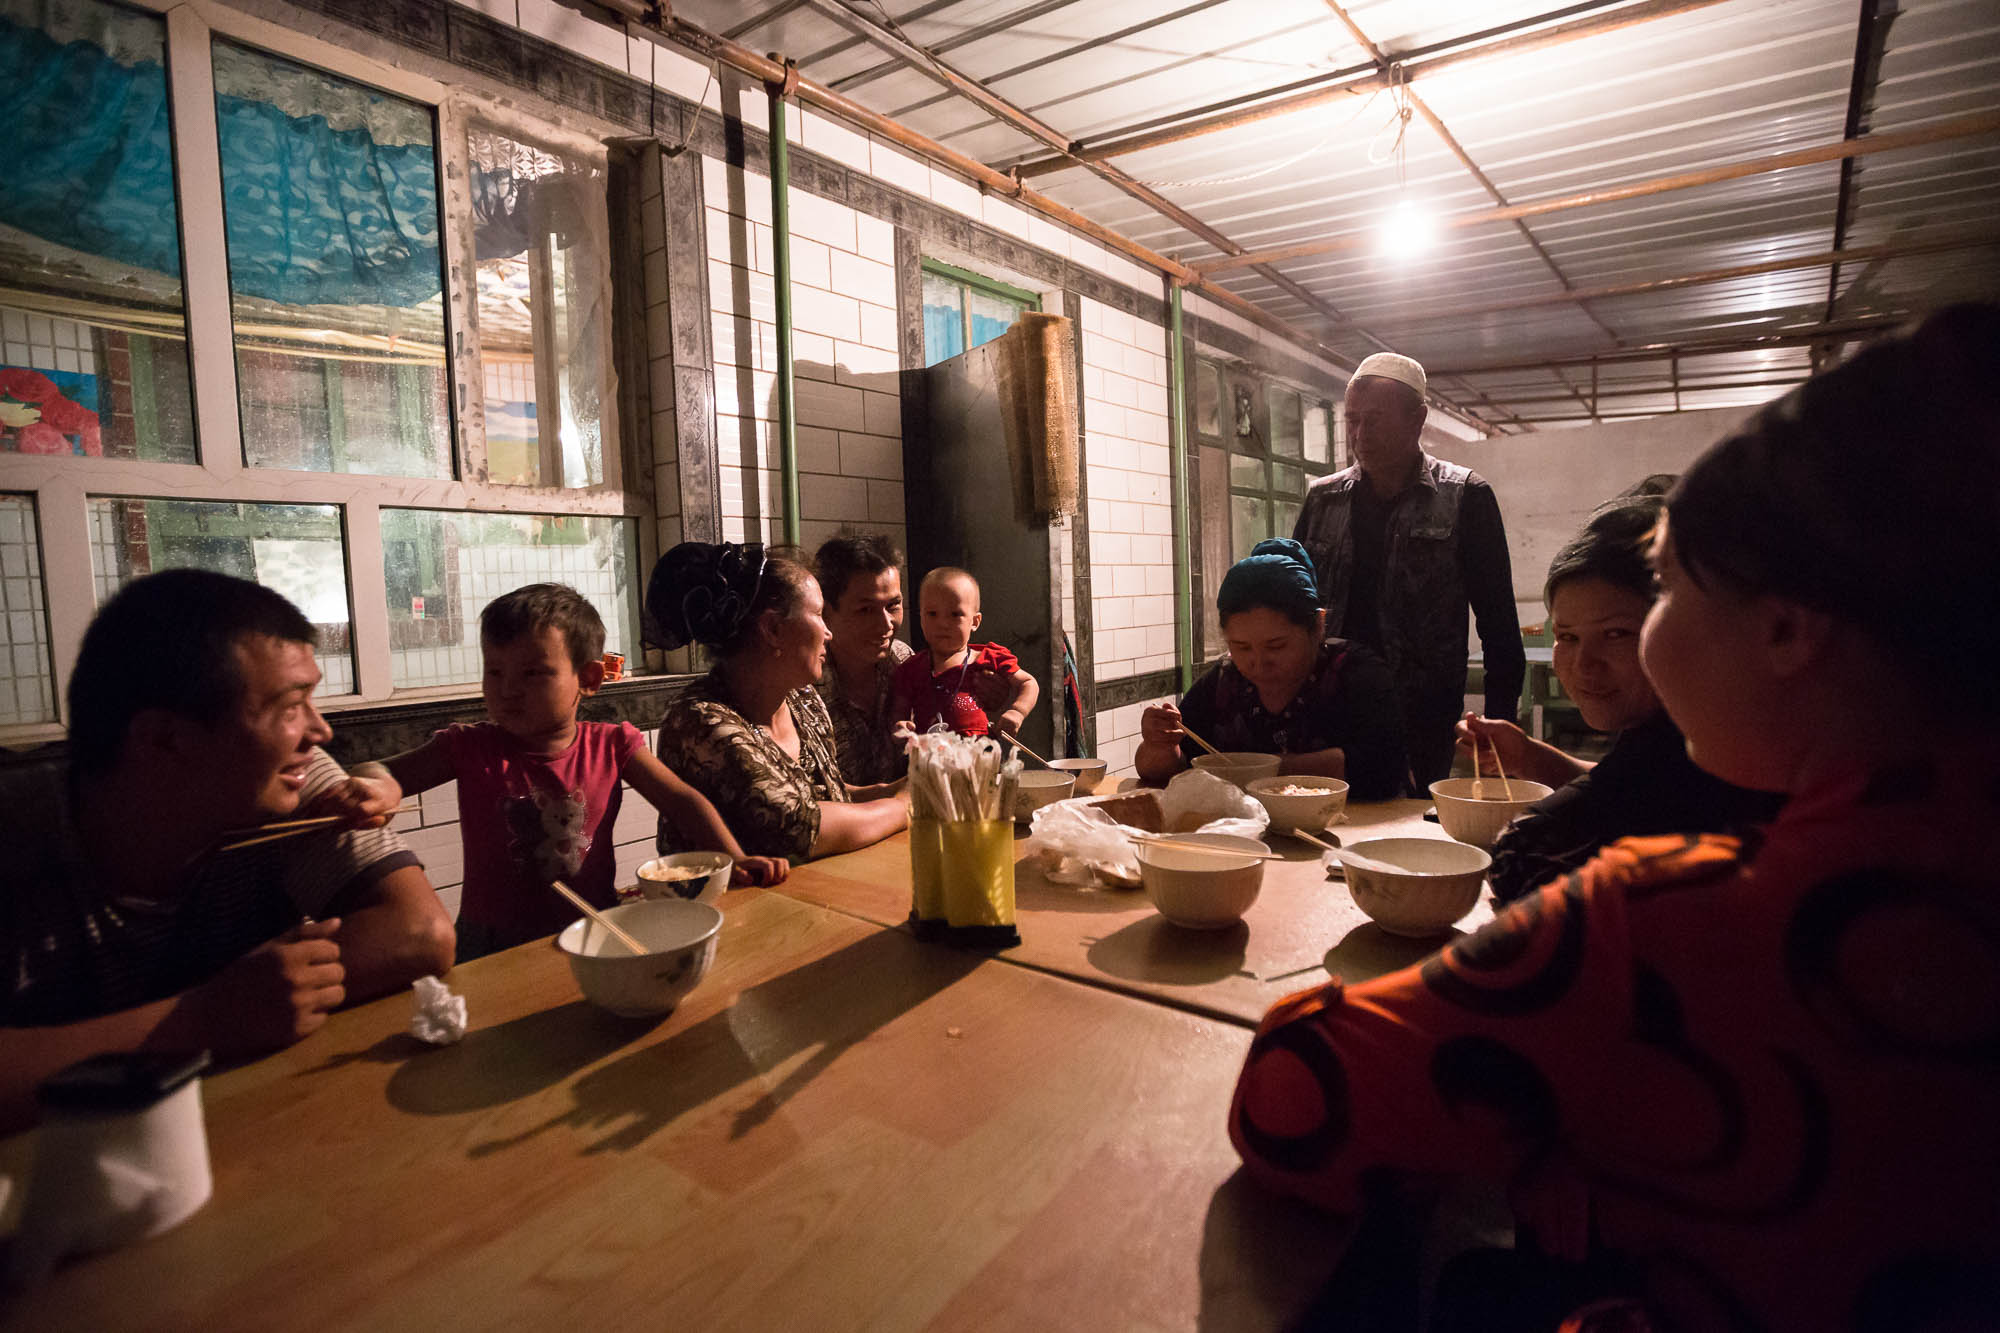 This Uyghur family gave me shelter for the night